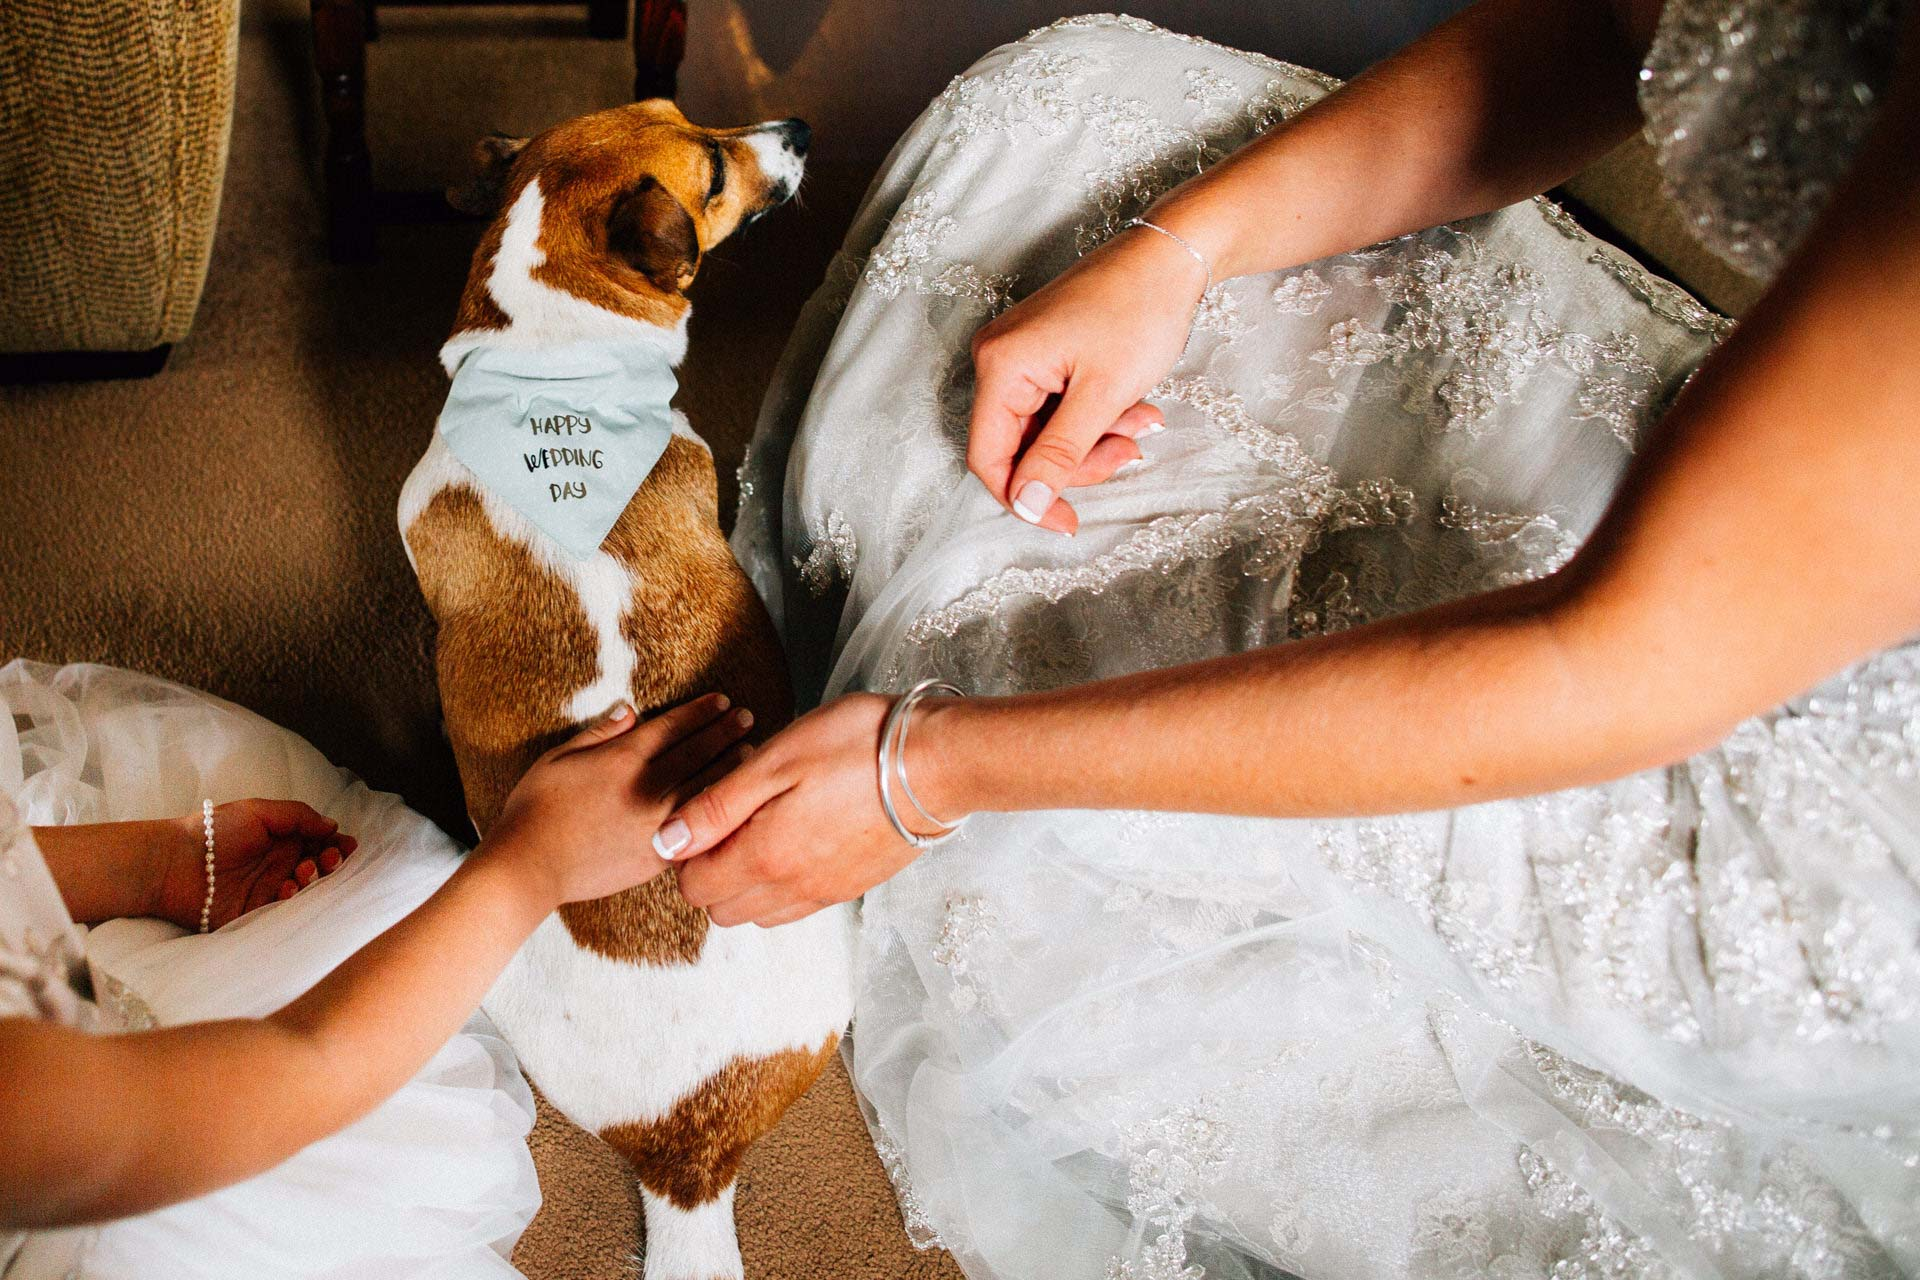 Best wedding photography 2016 - dog with wedding outfit on